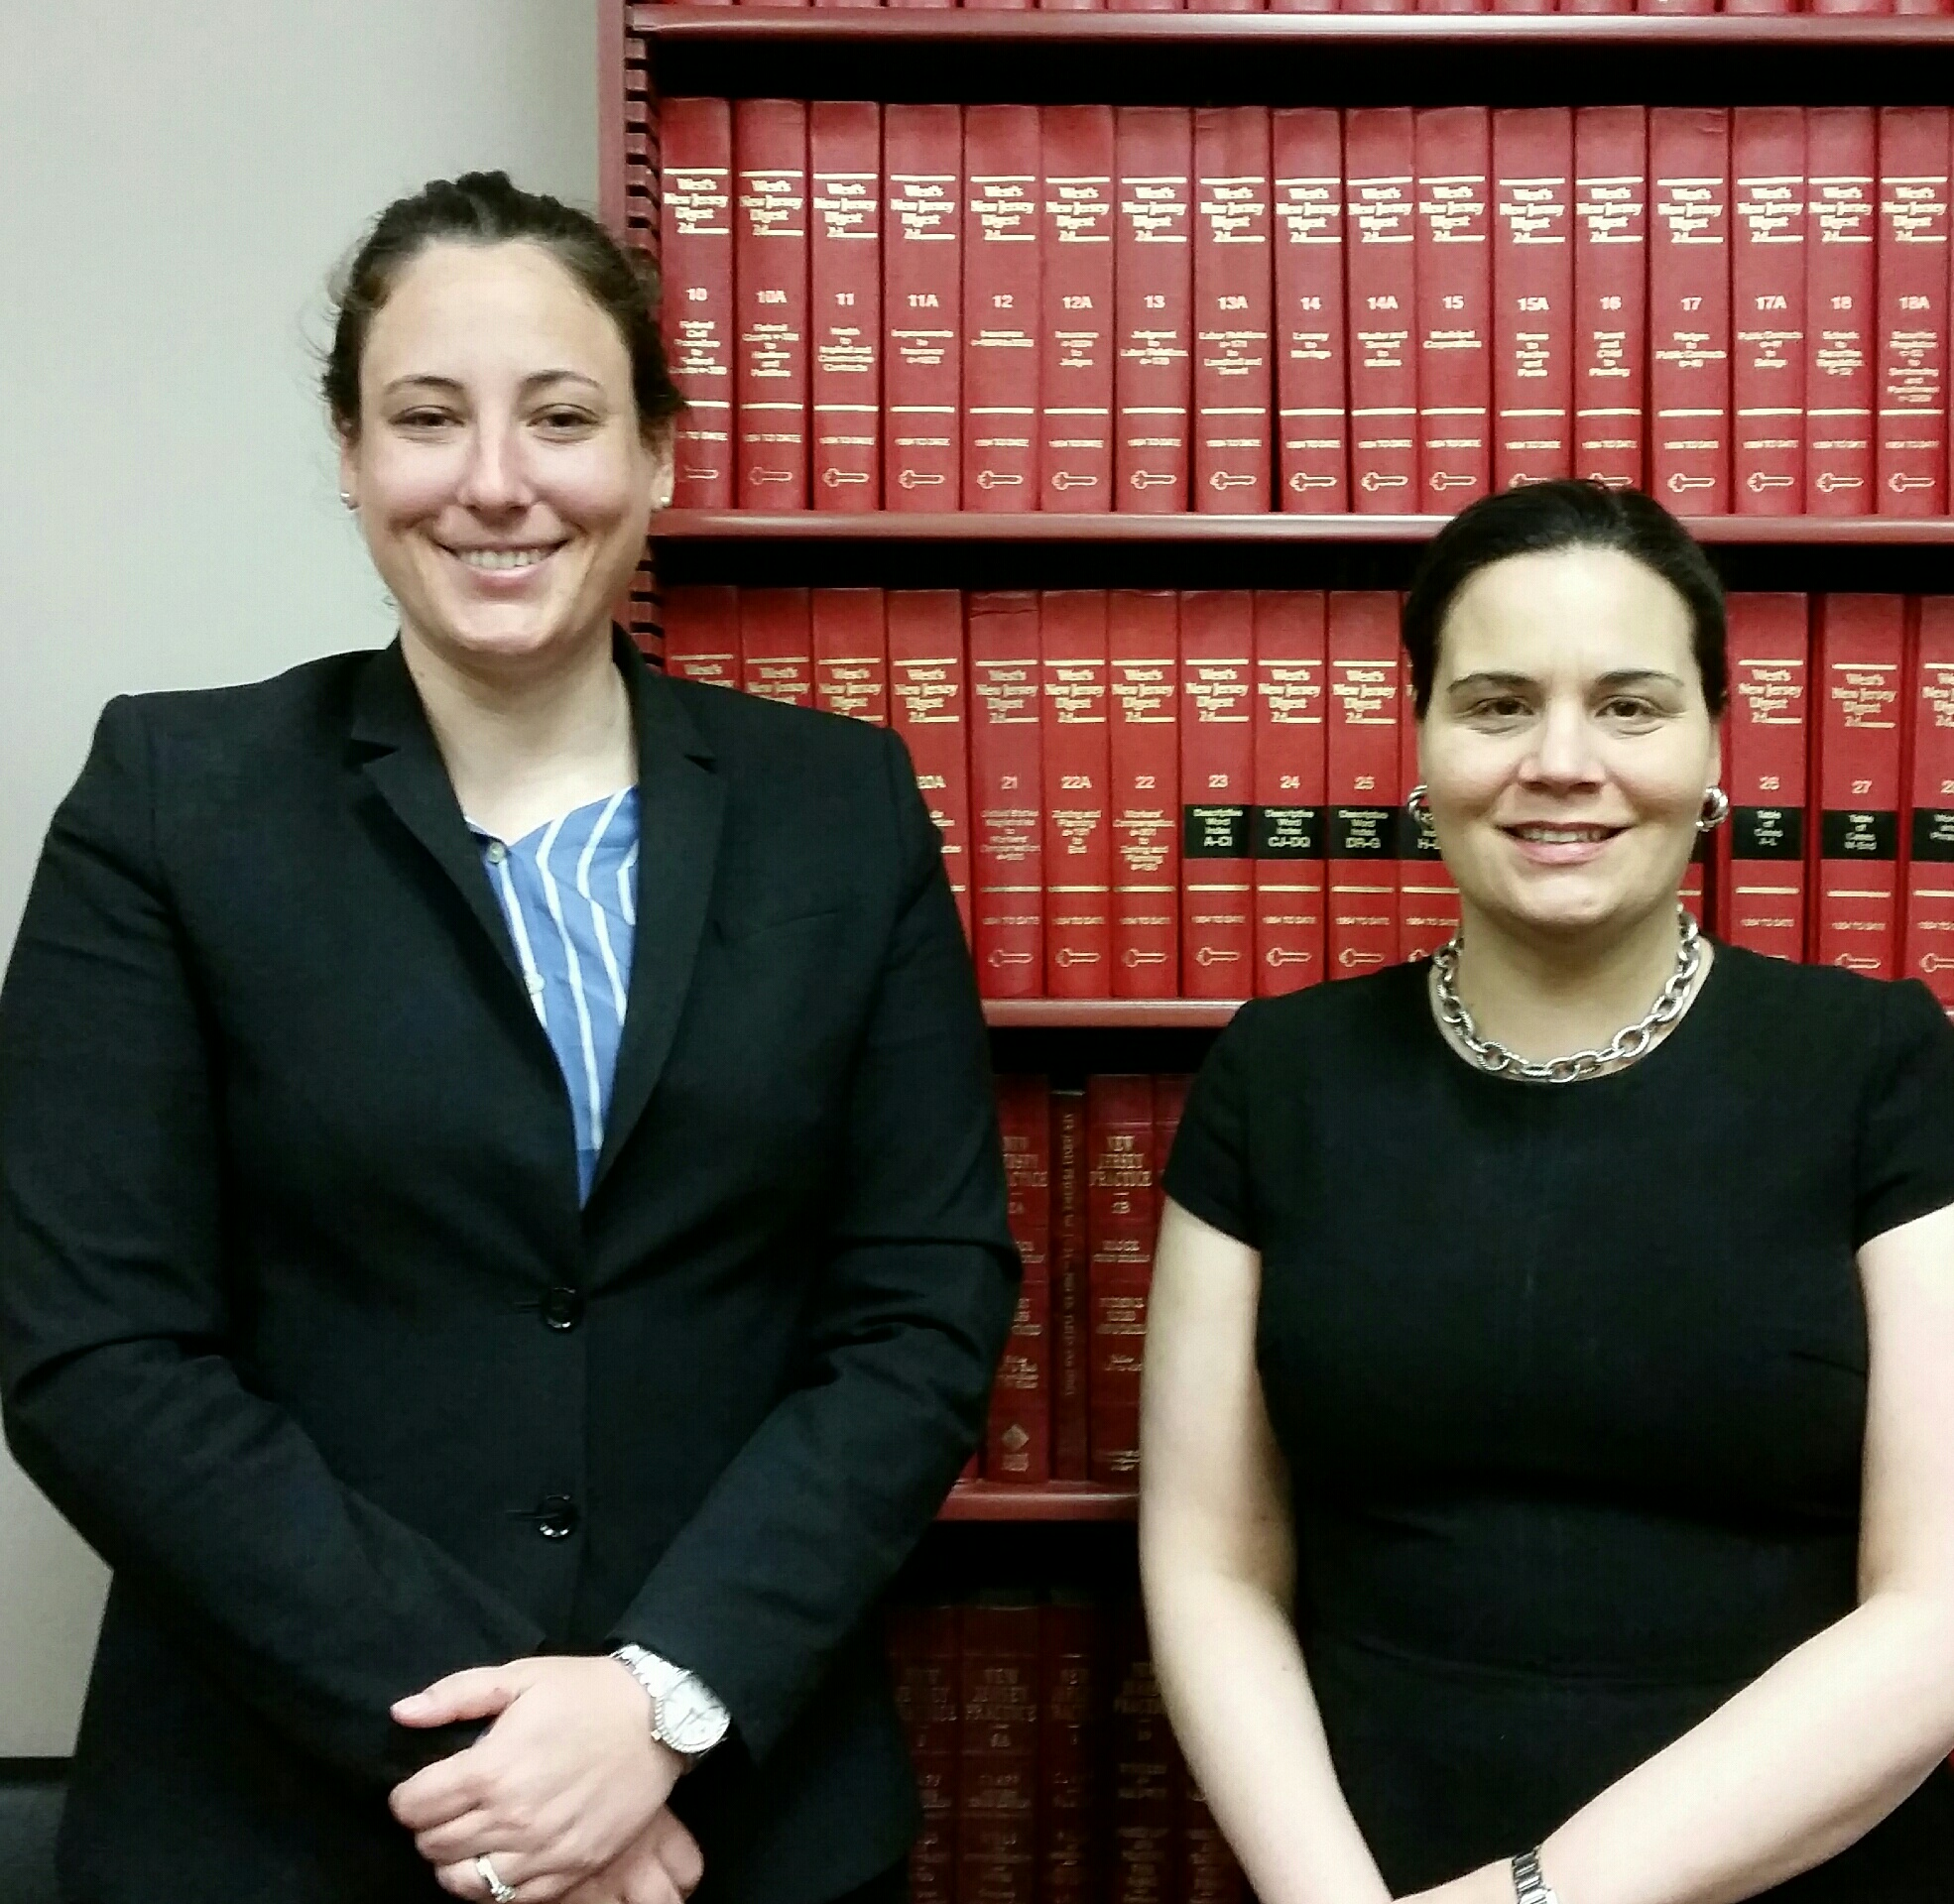 Michelle T. Huntsman, Esq. and Melissa A. Chuderewicz, Esq. (Pepper Hamilton LLP).